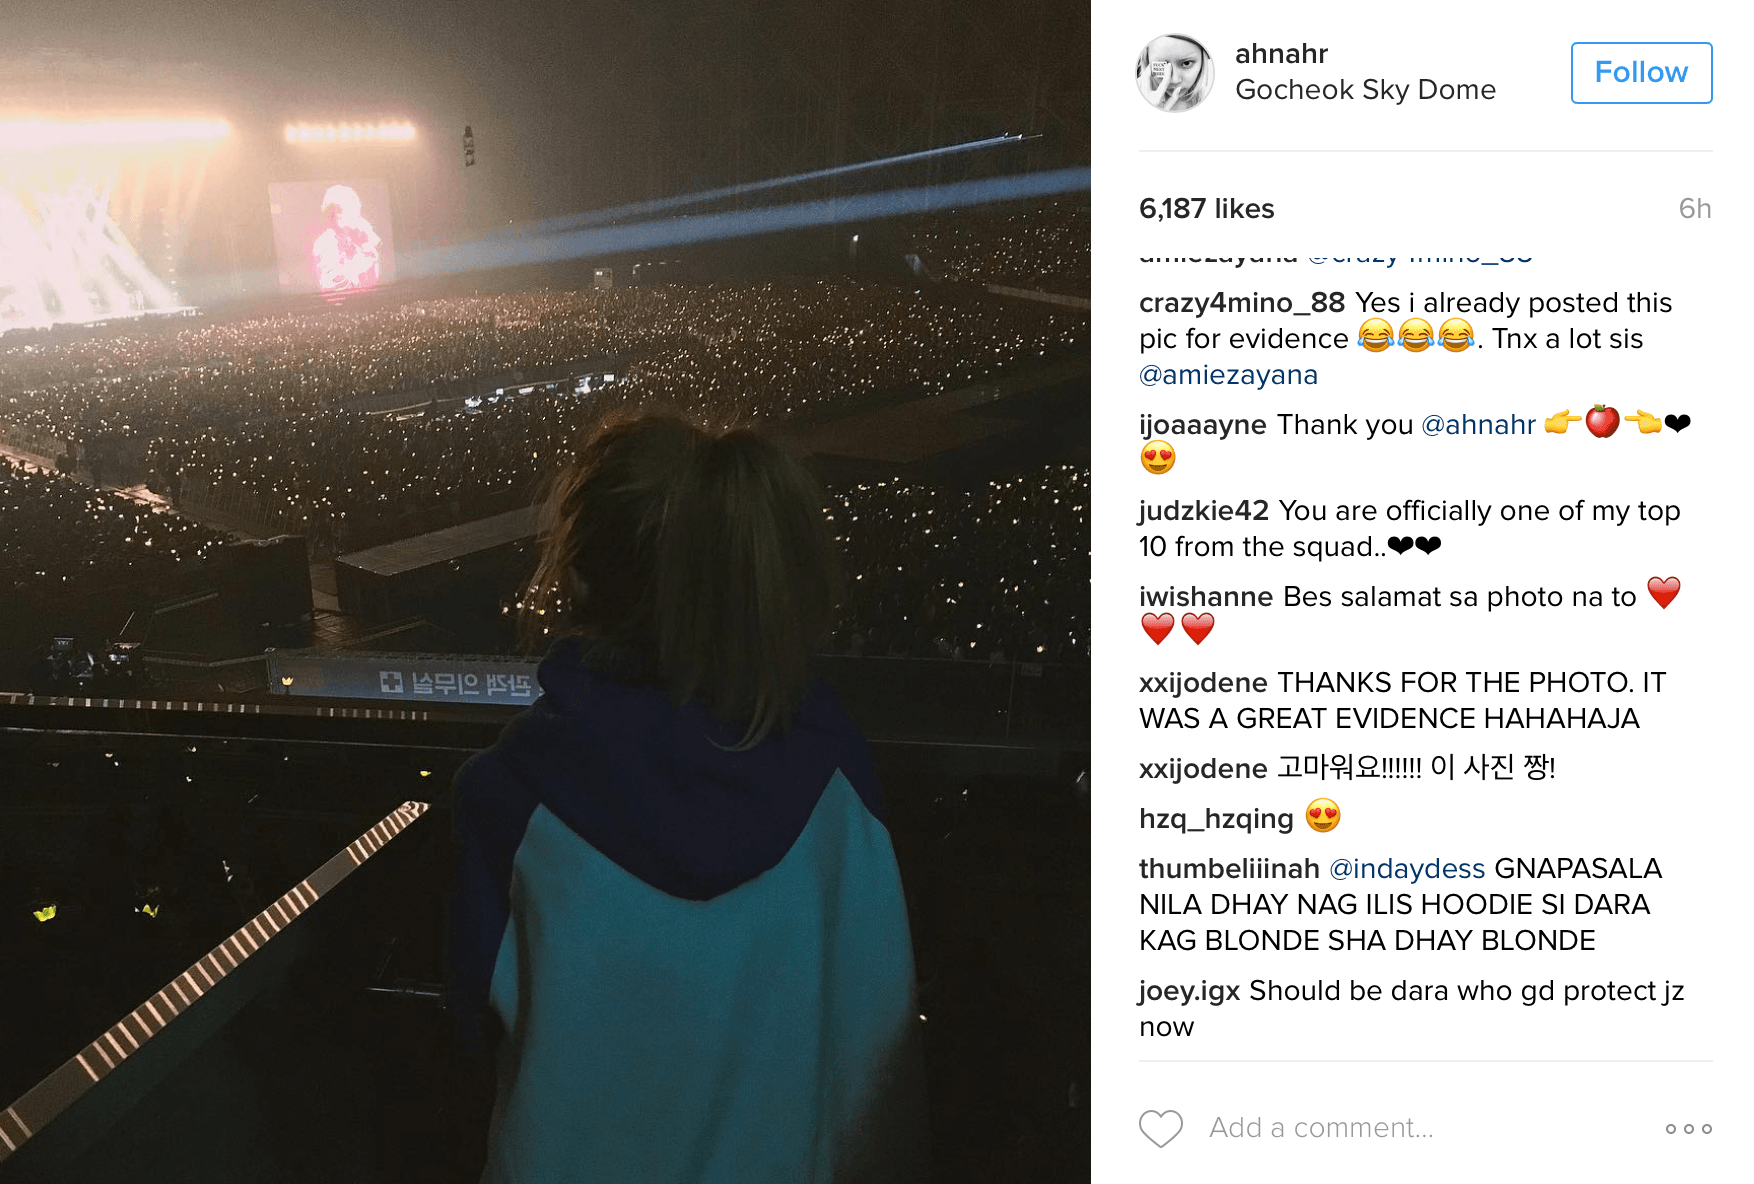 Sandara Park was at BIGBANG's concert before the videos showing G-Dragon leaving the venue.